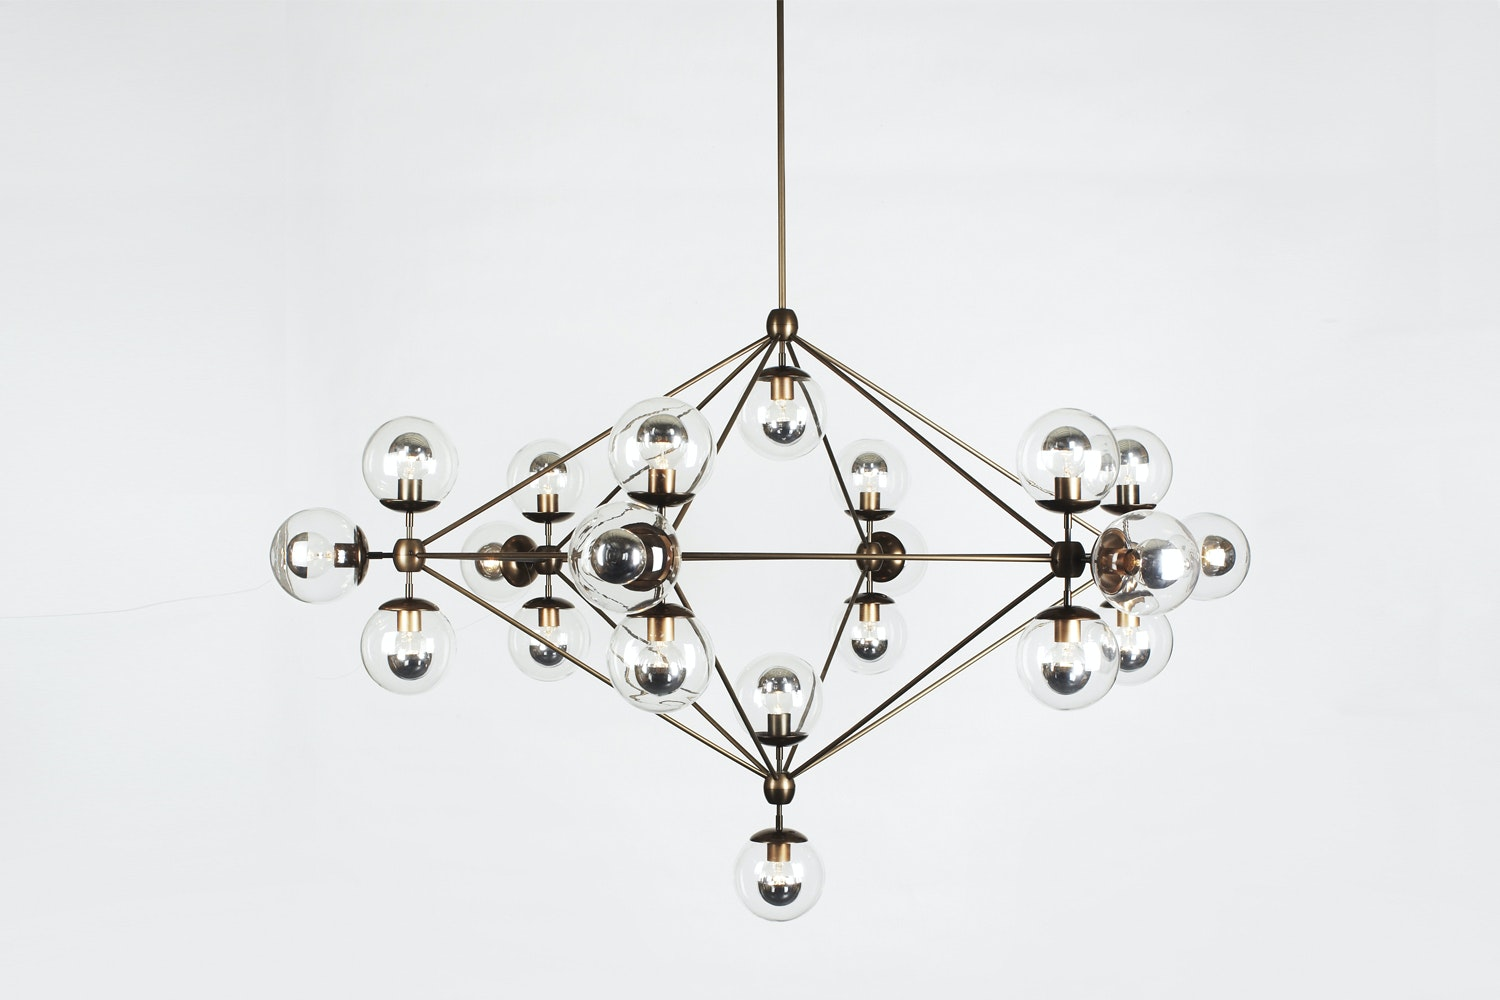 Modo Chandelier - 6 Sided 21 Globes Bronze, Smoked by Jason Miller for Roll & Hill